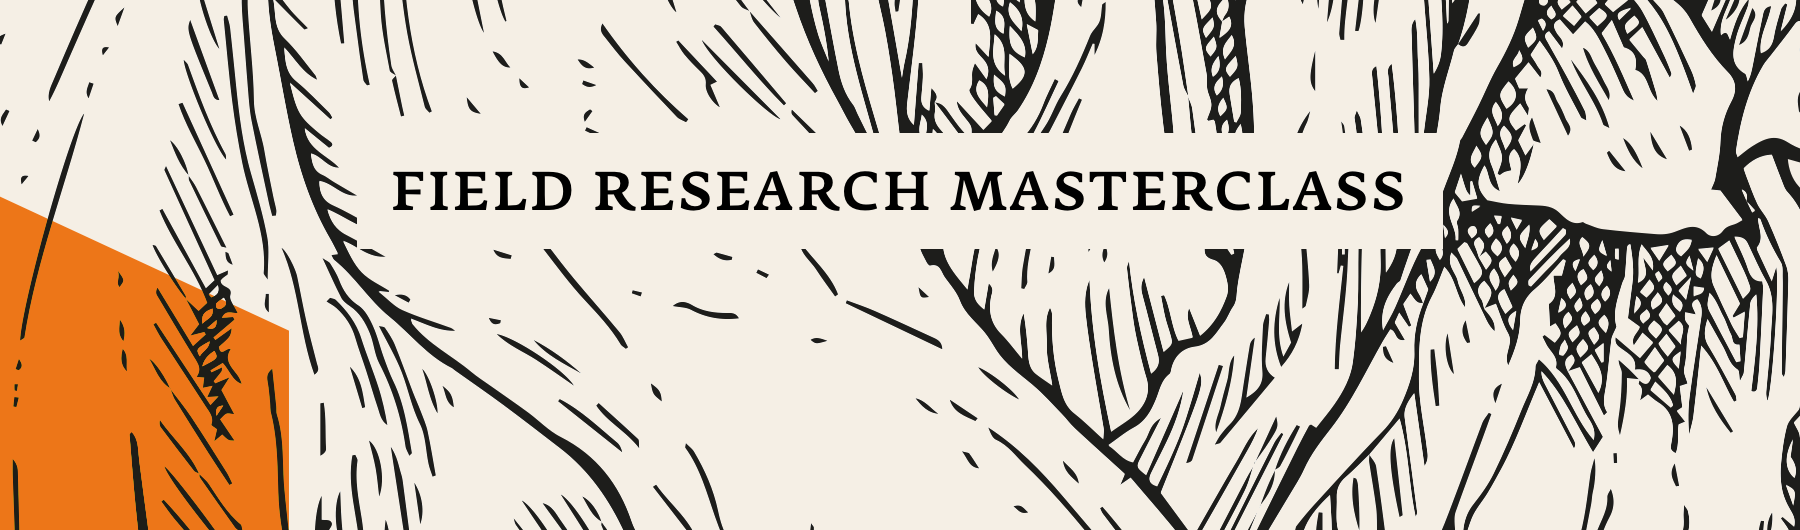 May 16, Field Research Masterclass, Paris